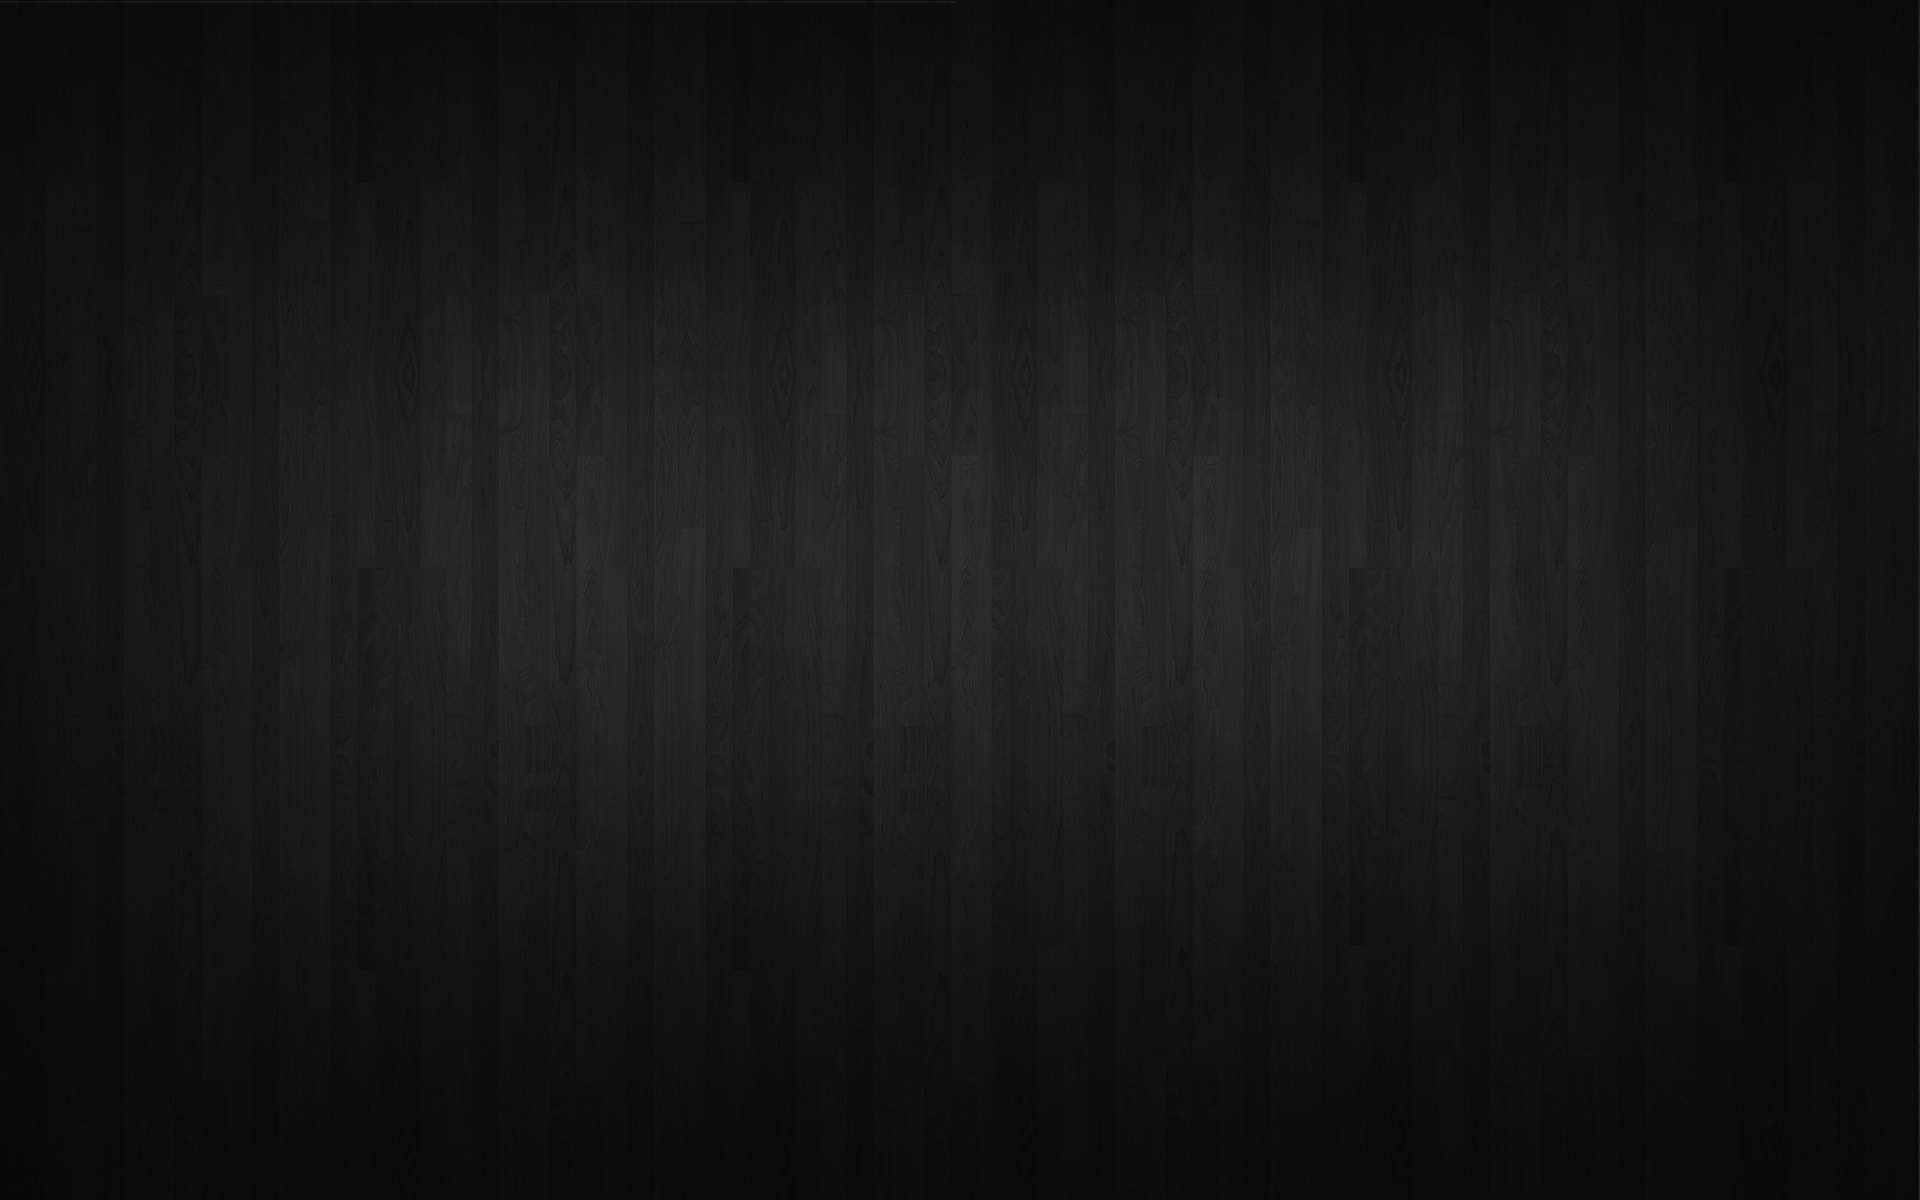 Wood Grain Wallpaper wood grain wallpaper 15239 1920x1200 px ~ hdwallsource